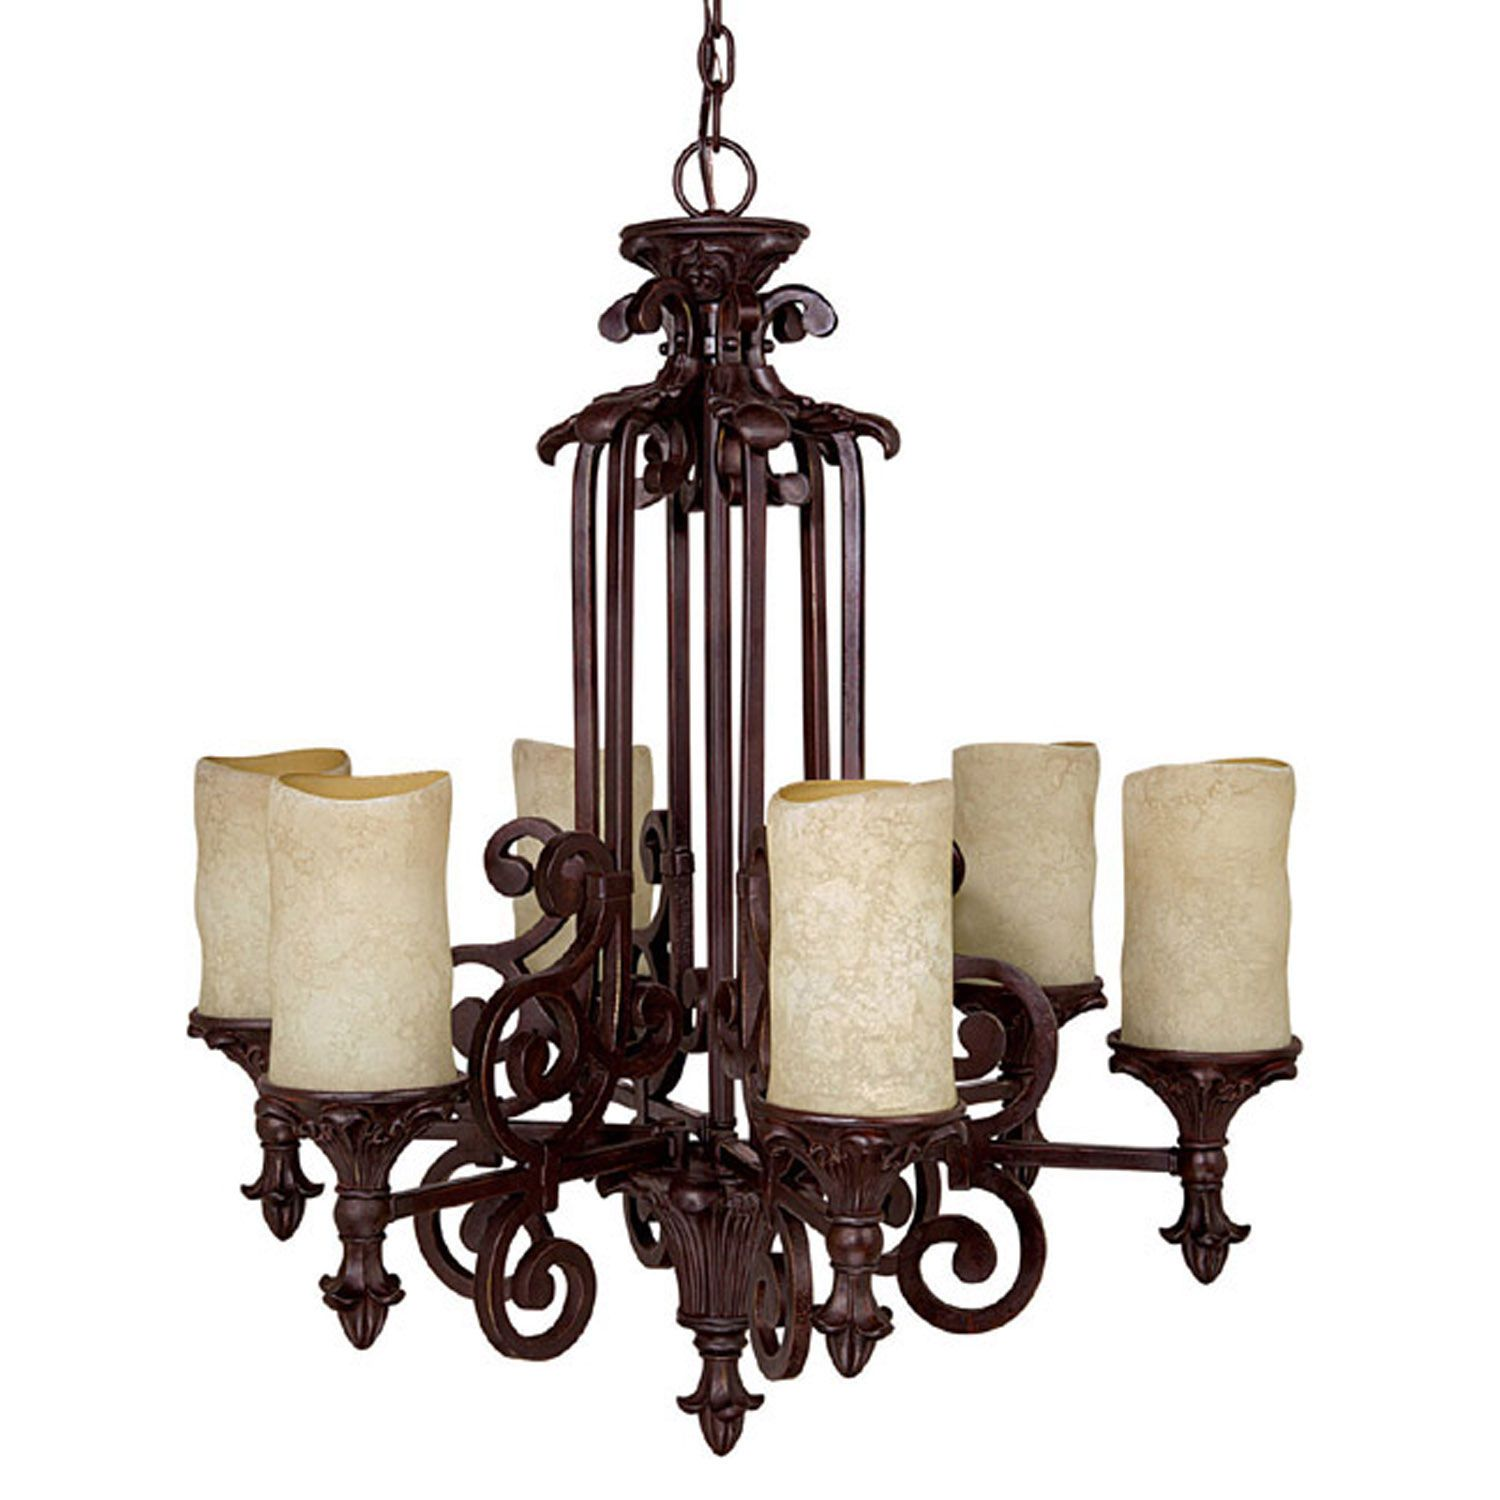 Mid Chandeliers Pillar Candle lifestyles edmond $399